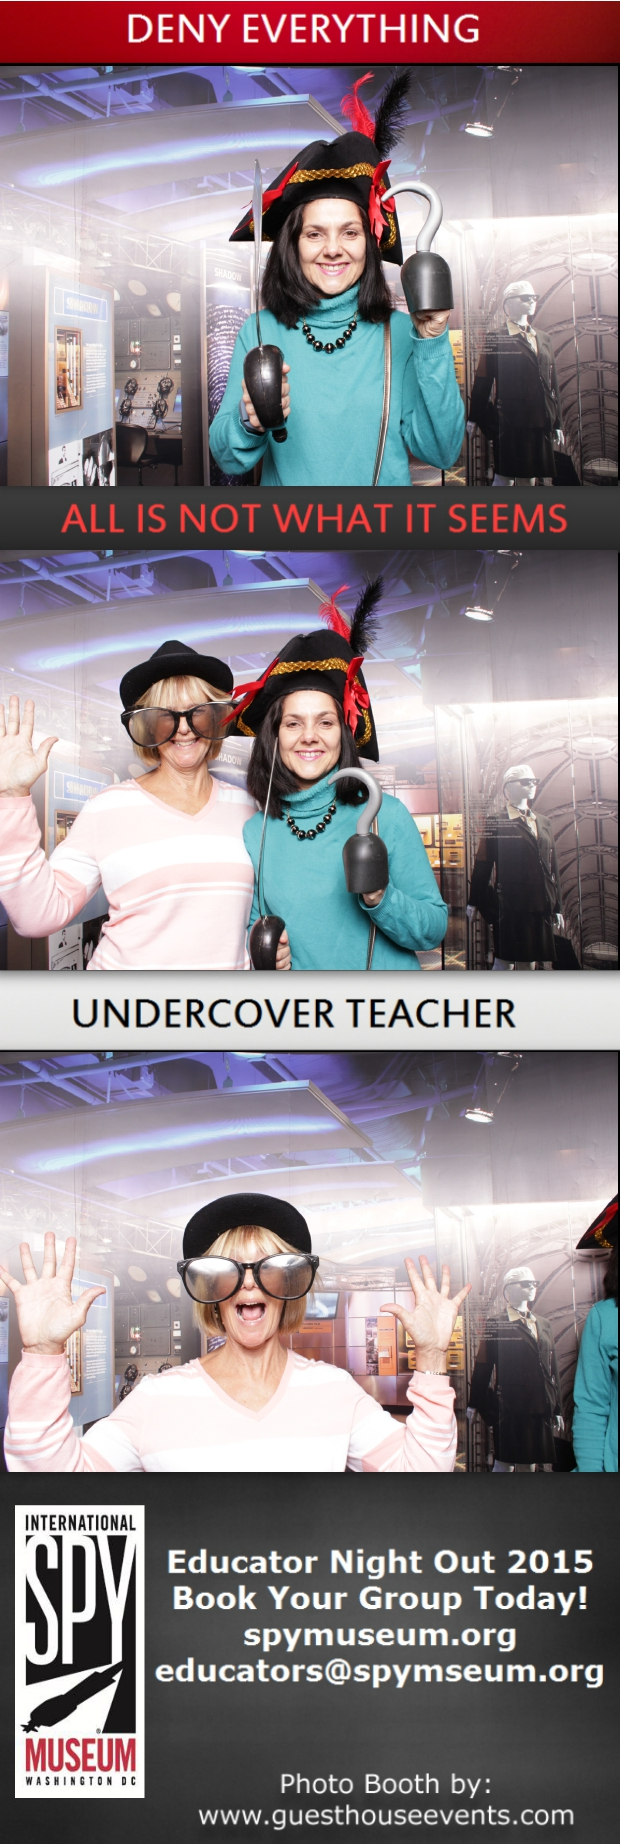 Guest House Events Photo Booth Spy Museum Educator Night Out (9).jpg